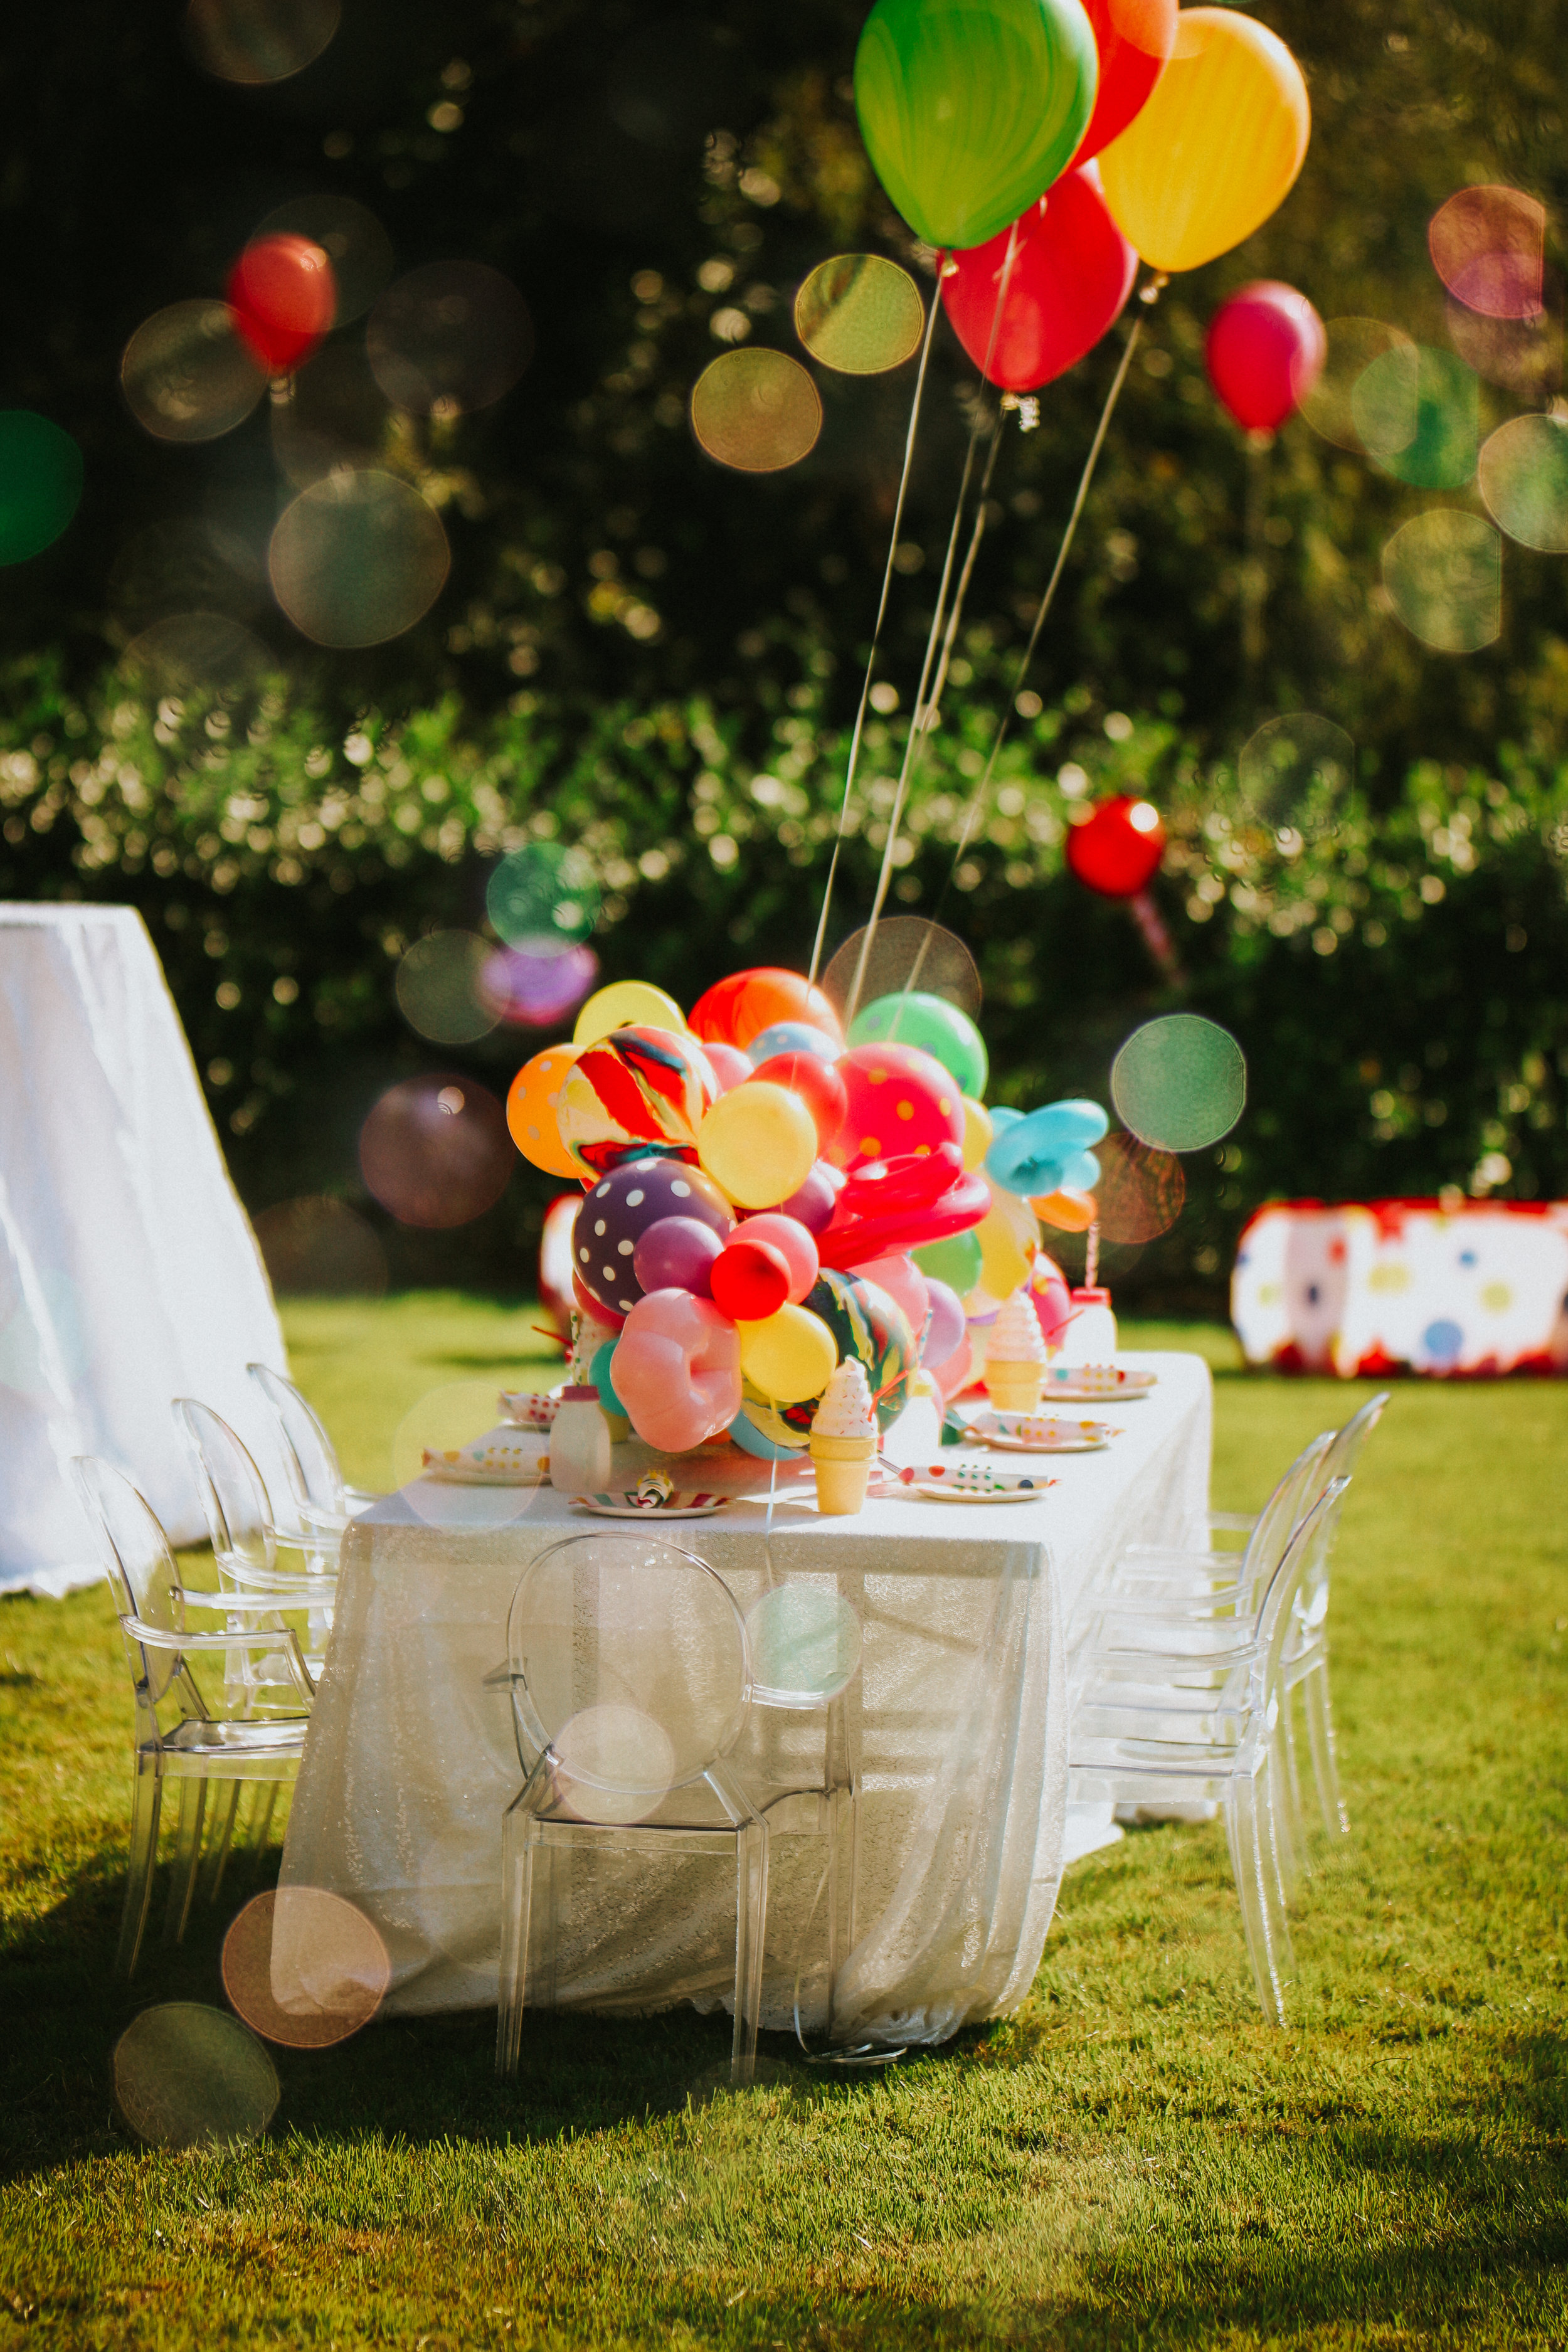 Willy Wonka Themed Birthday Party - Scarlet Plan & Design Atlanta Party Event Planners & Designers (254).jpg